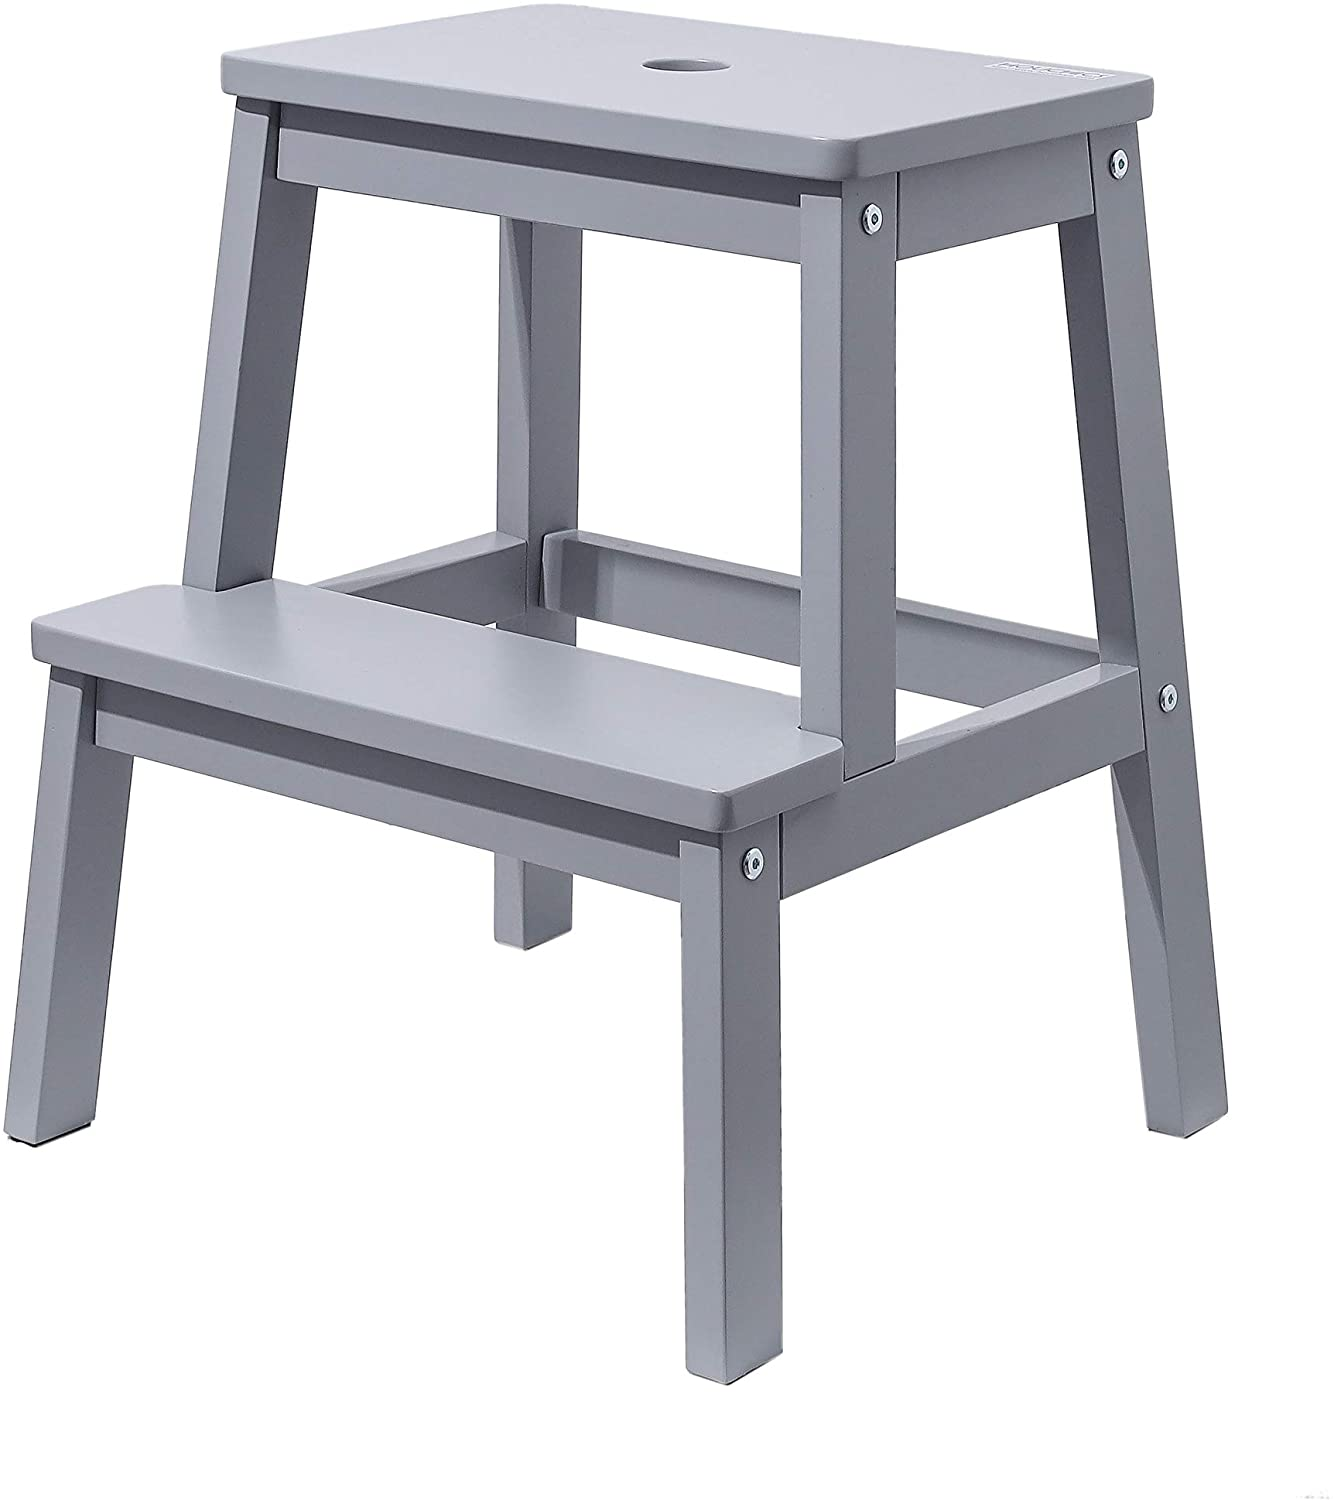 HOUCHICS Wooden Step Stool for Adult with 260lb Load Capacity,Multi-Purpose Gray 2-Step Stool-Toddler Kids Bedside Step Helper for Kitchen,Bathroom,Bedroom